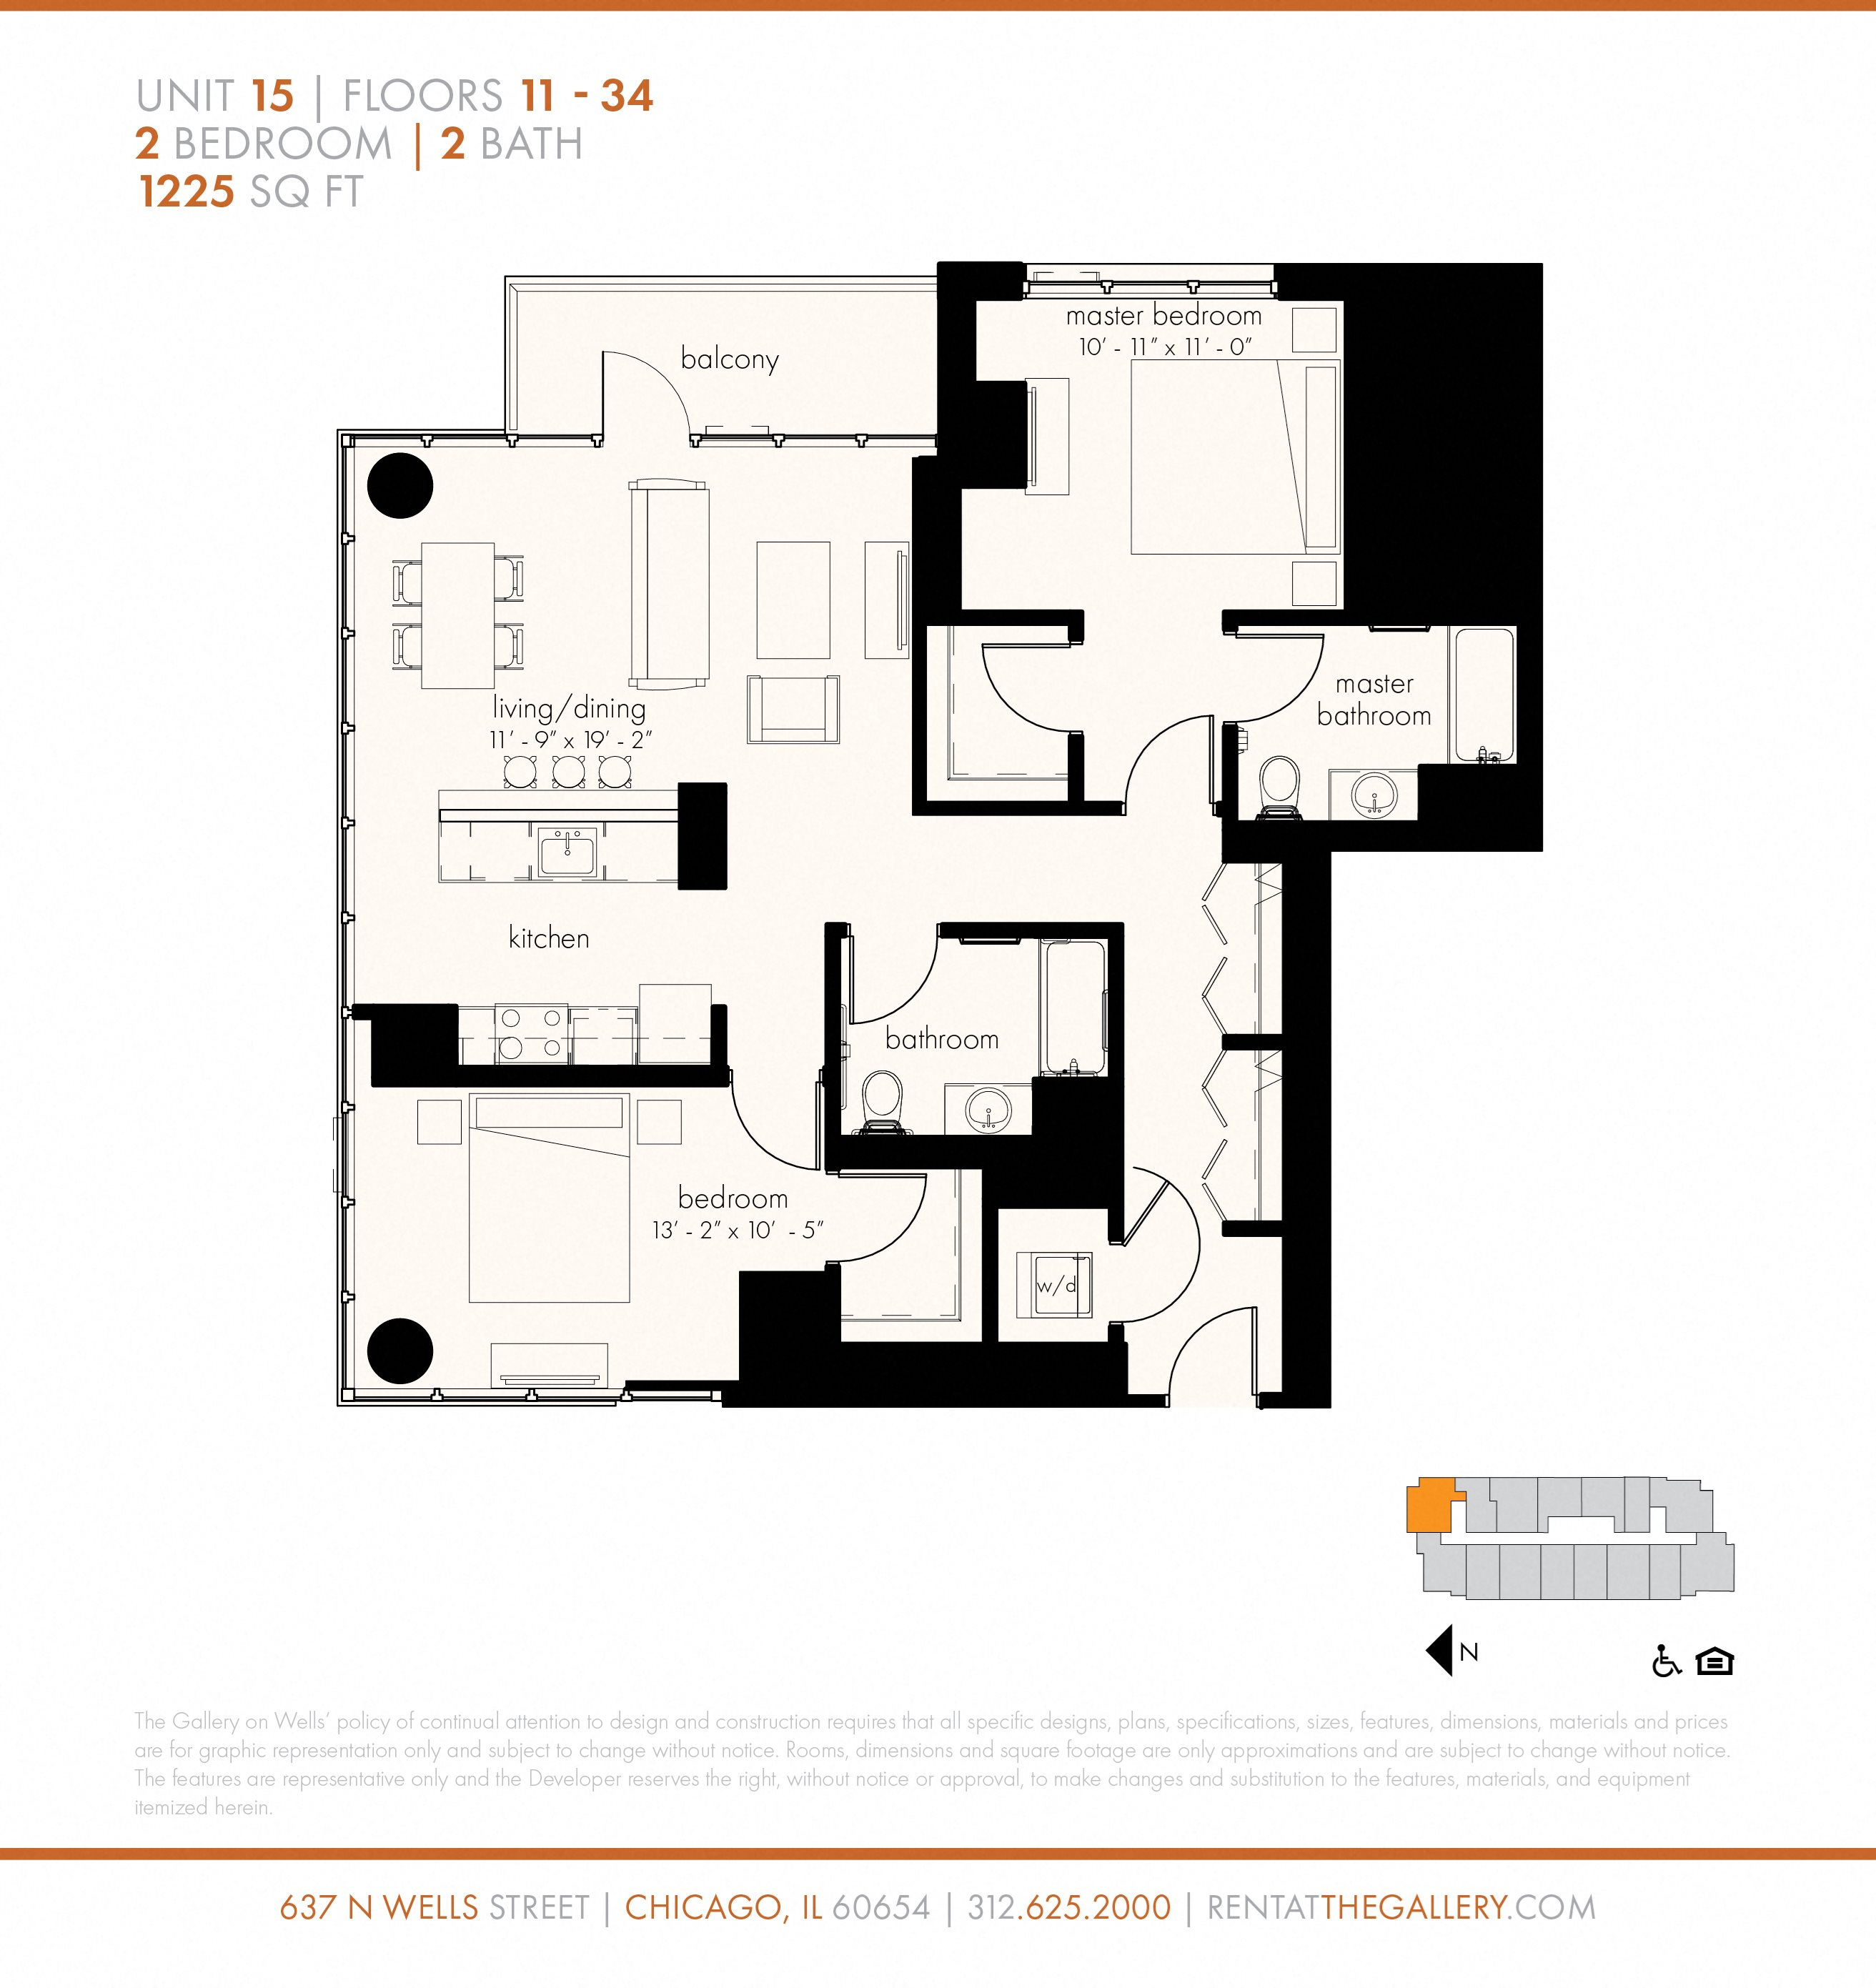 Two Bedroom (1225 sf) Floor Plan 20